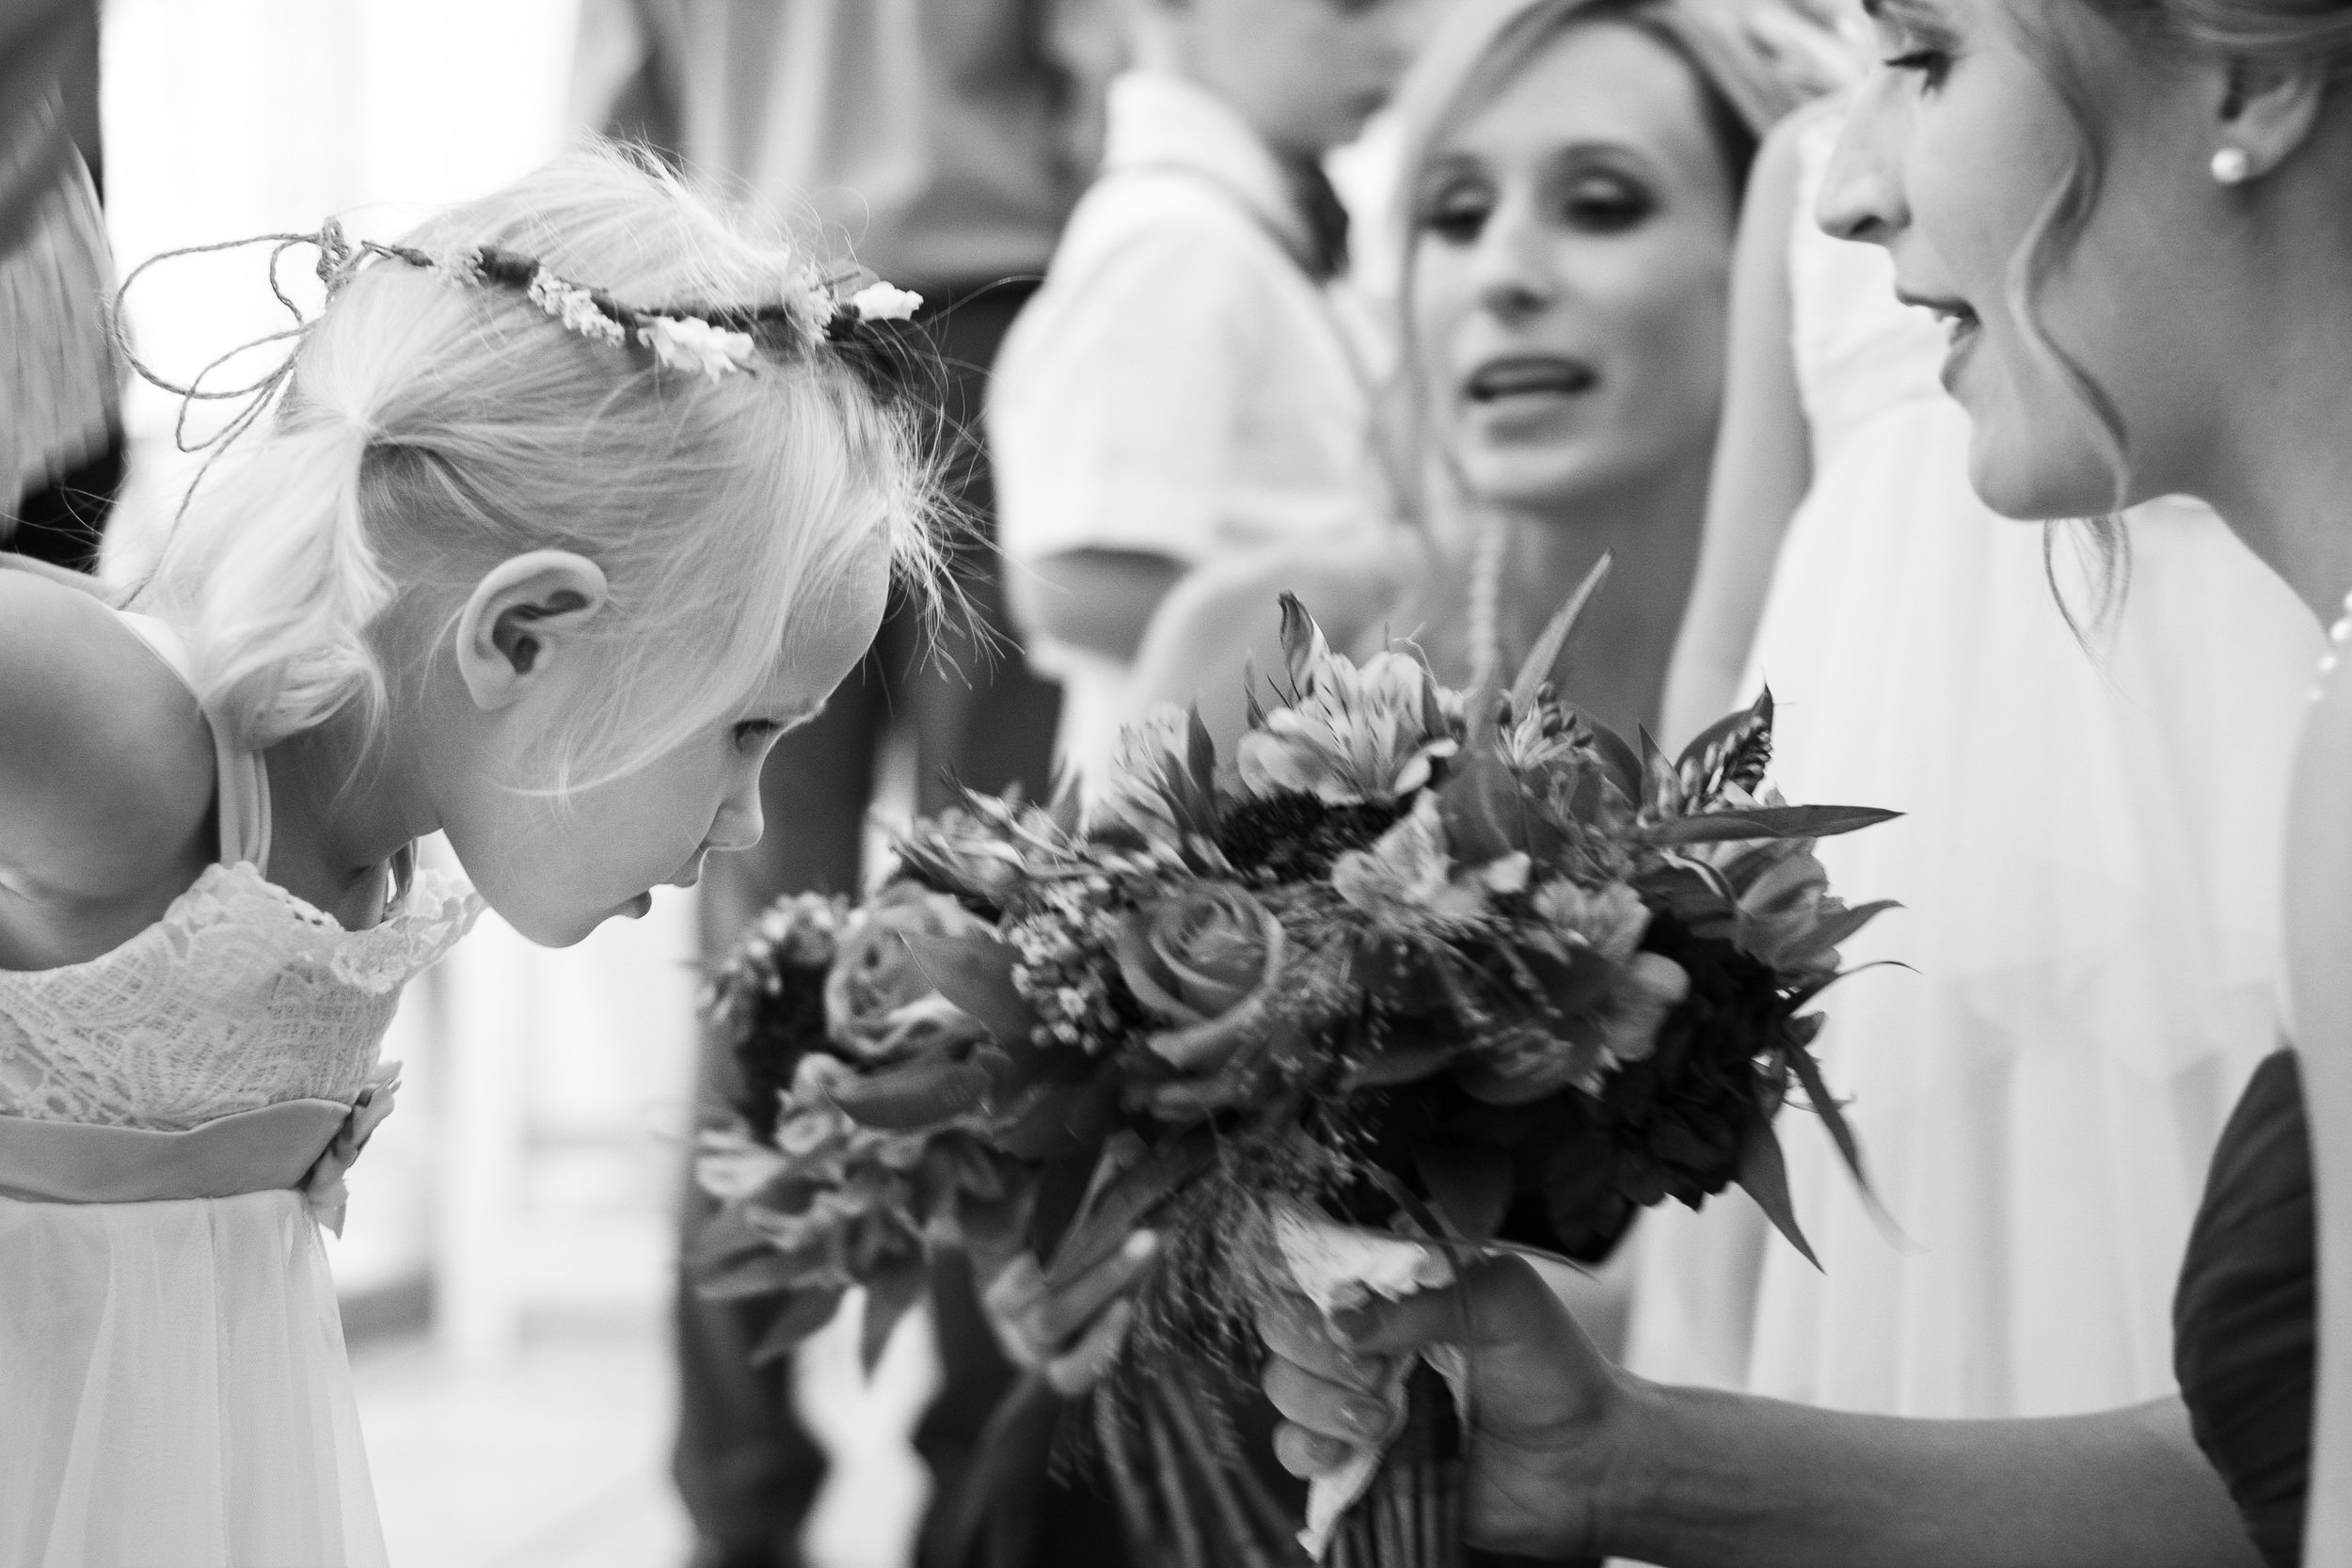 Flower girl in black and white